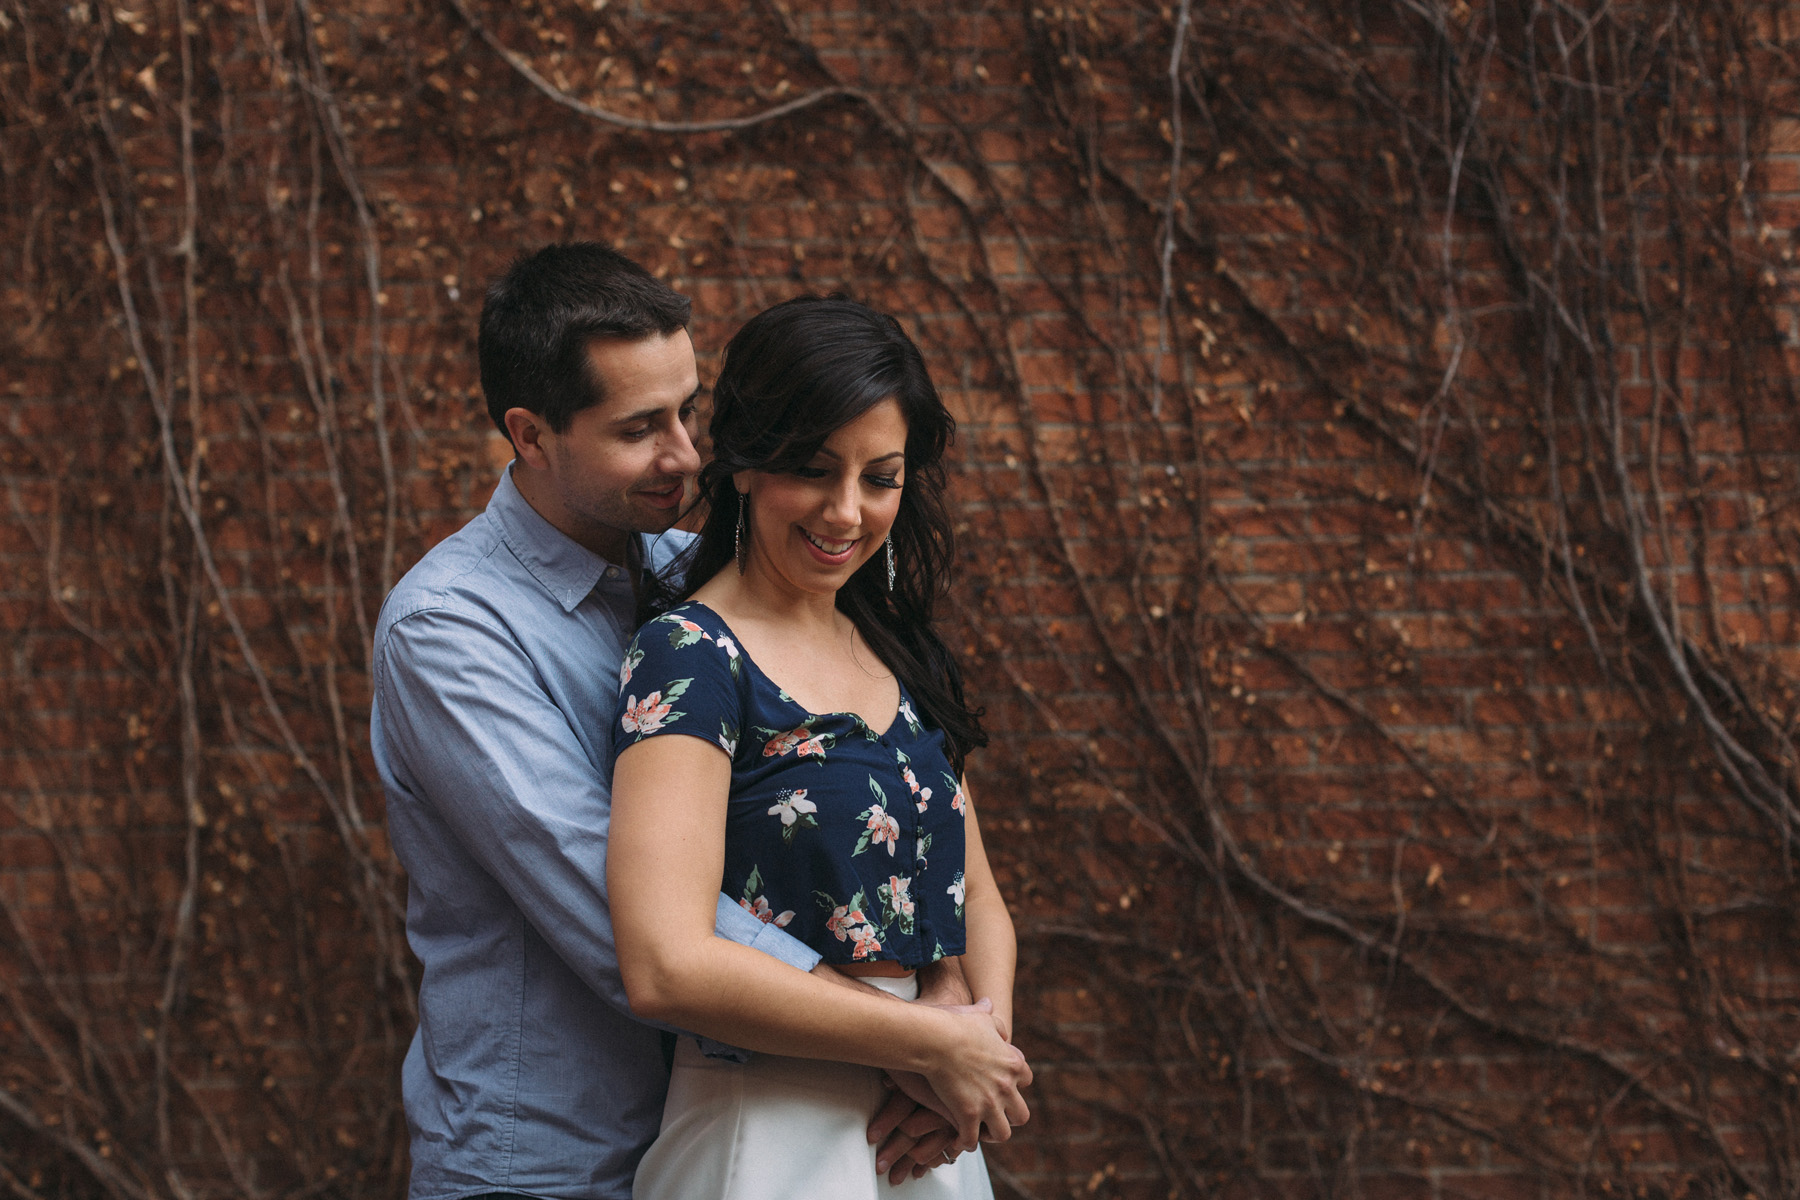 modern-Toronto-engagement-photography-Esplanade-by-Artanis-Collective-wedding-photographer-Sam-Wong_02.jpg